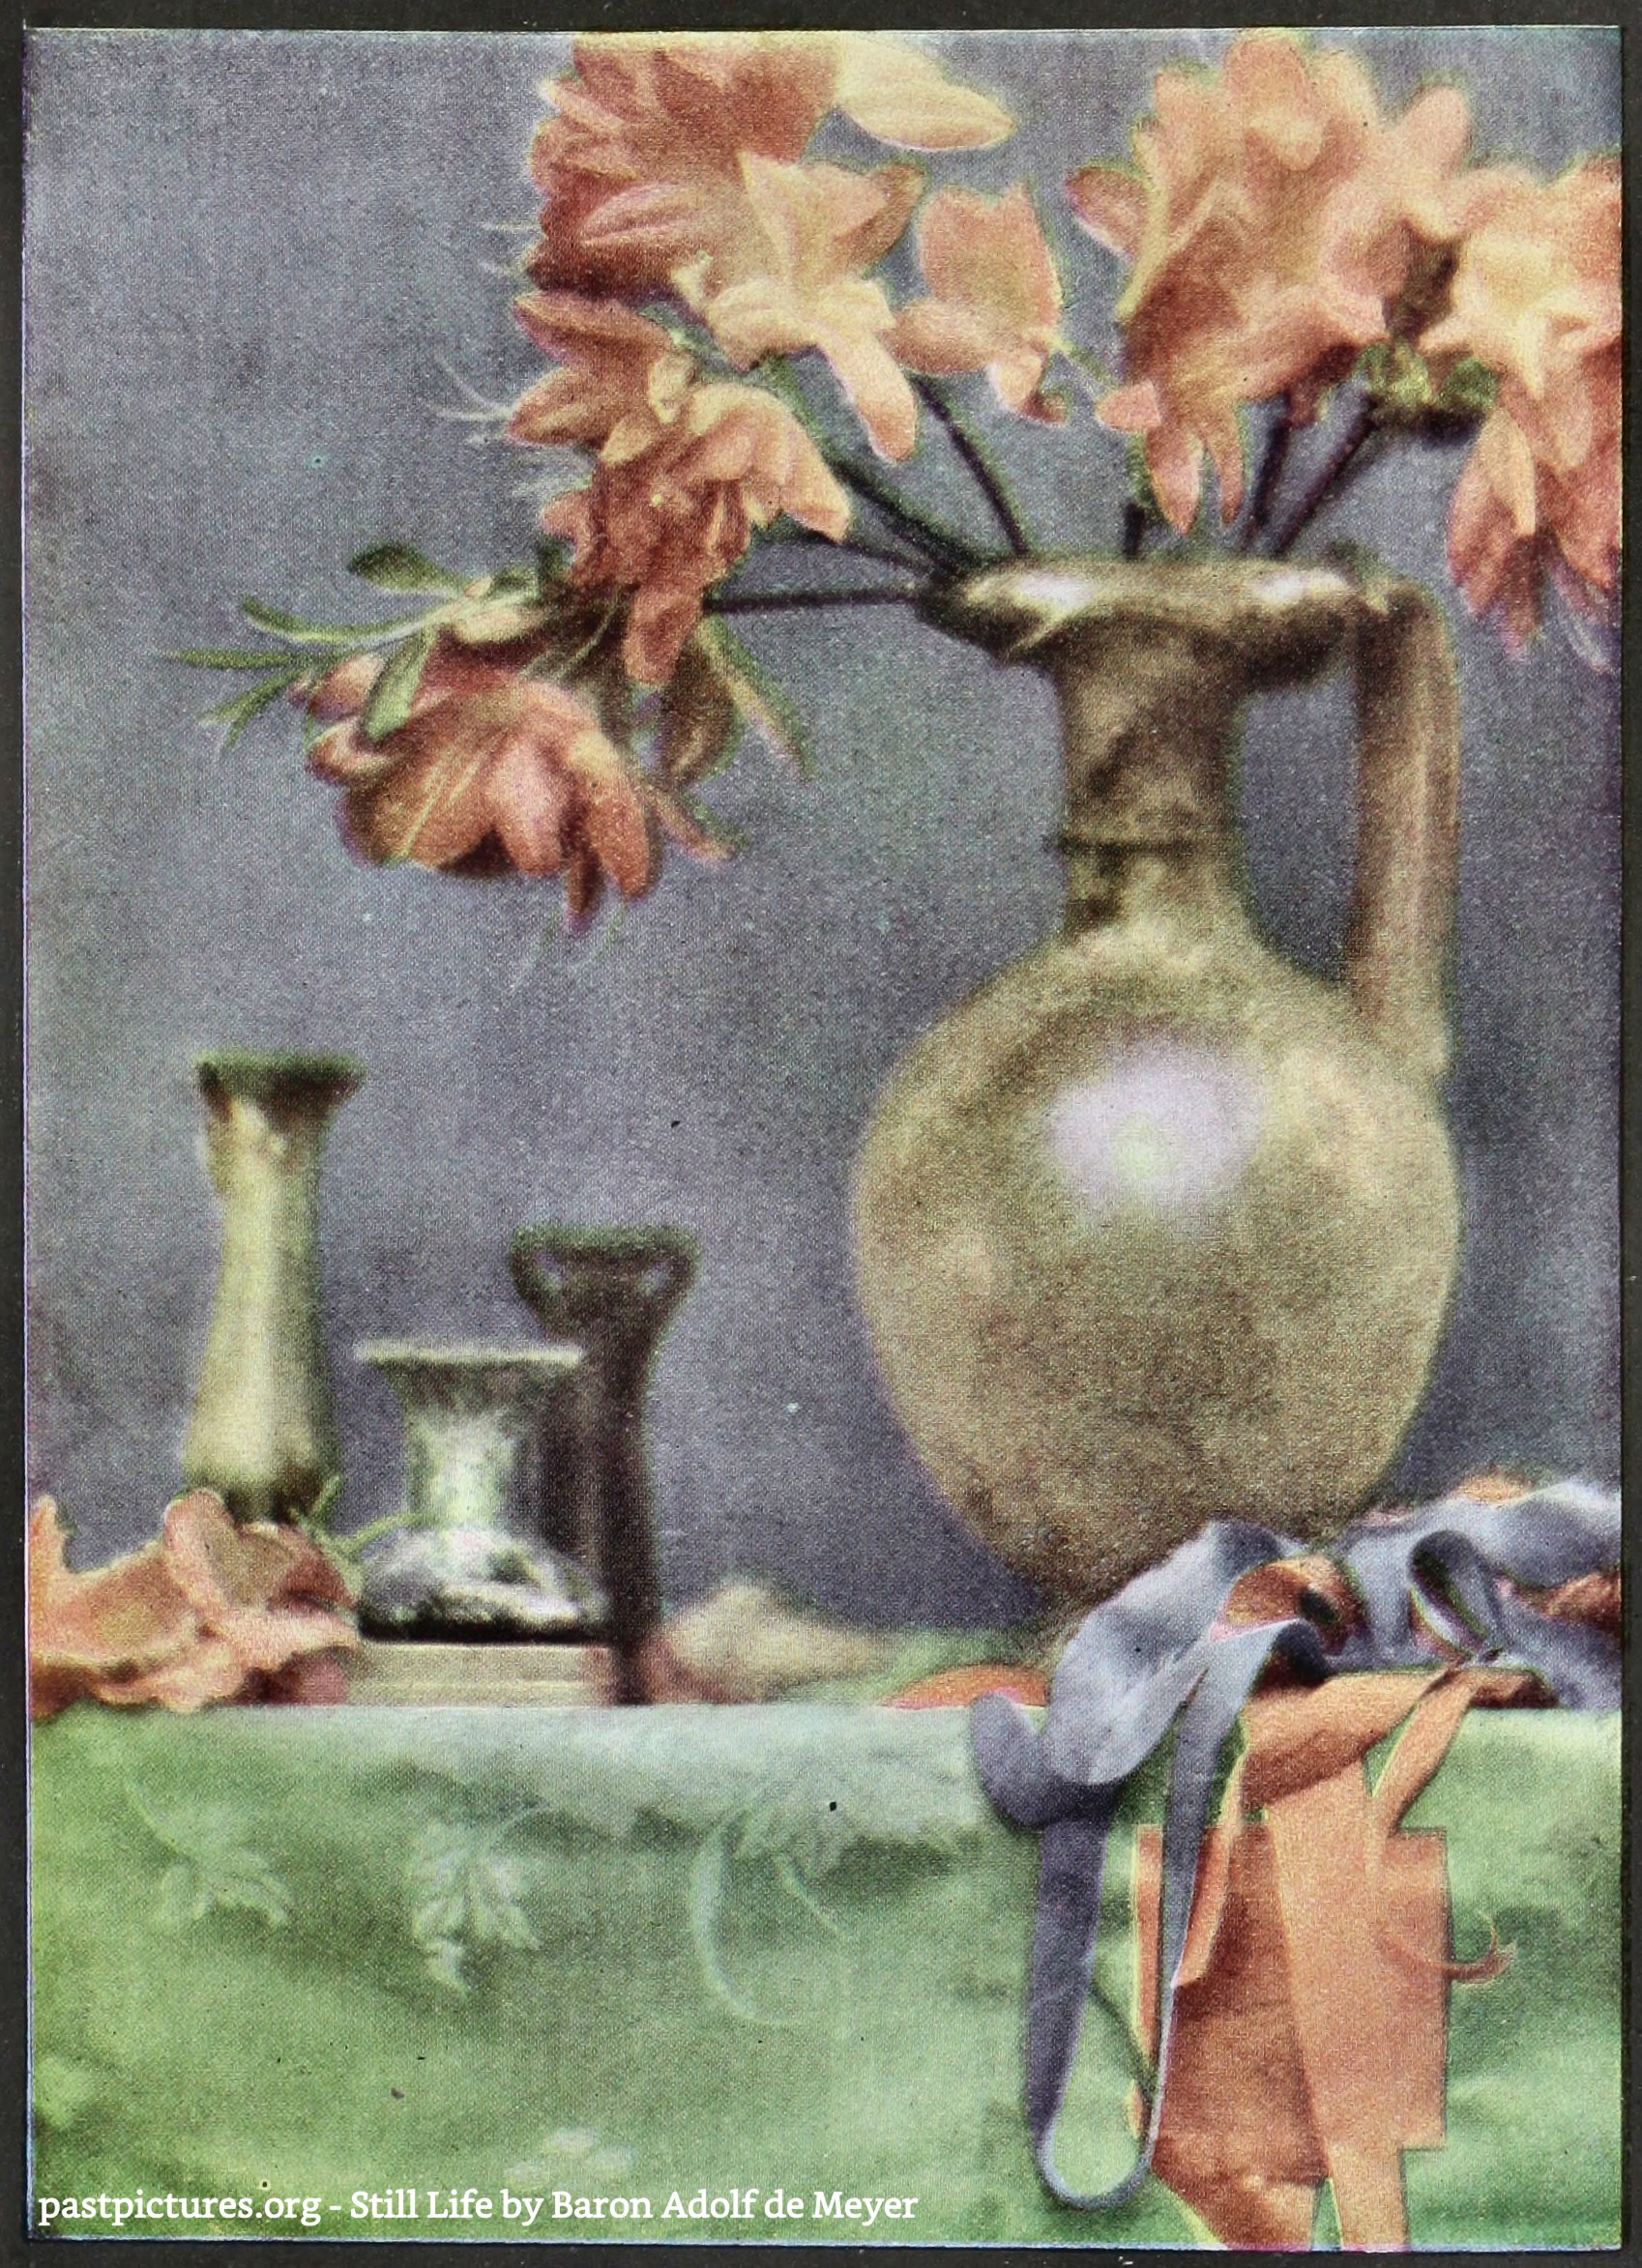 Still Life by Baron Adolf de Meyer